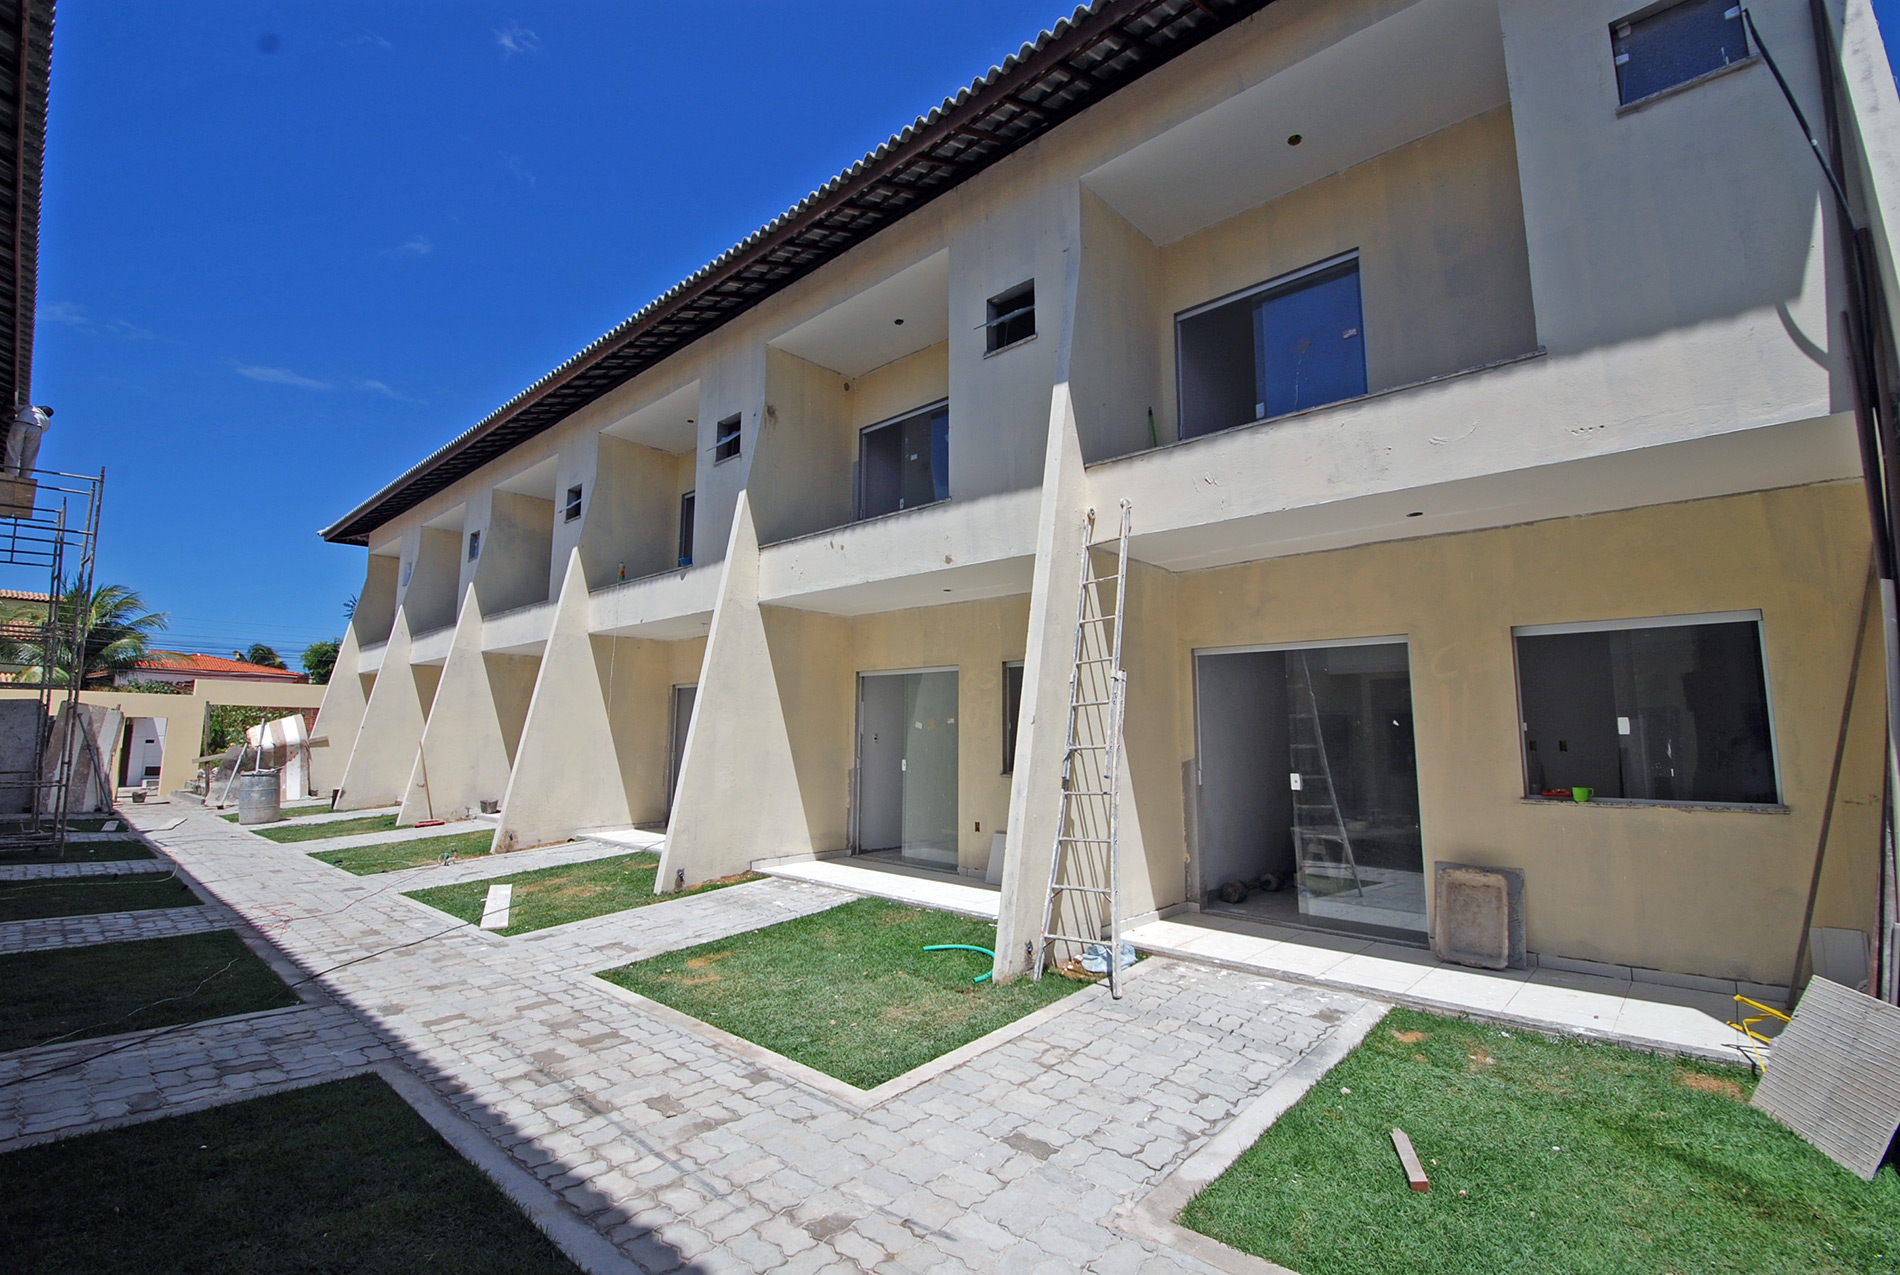 New House For Sale In Ipitanga 500 Meters From The Beach